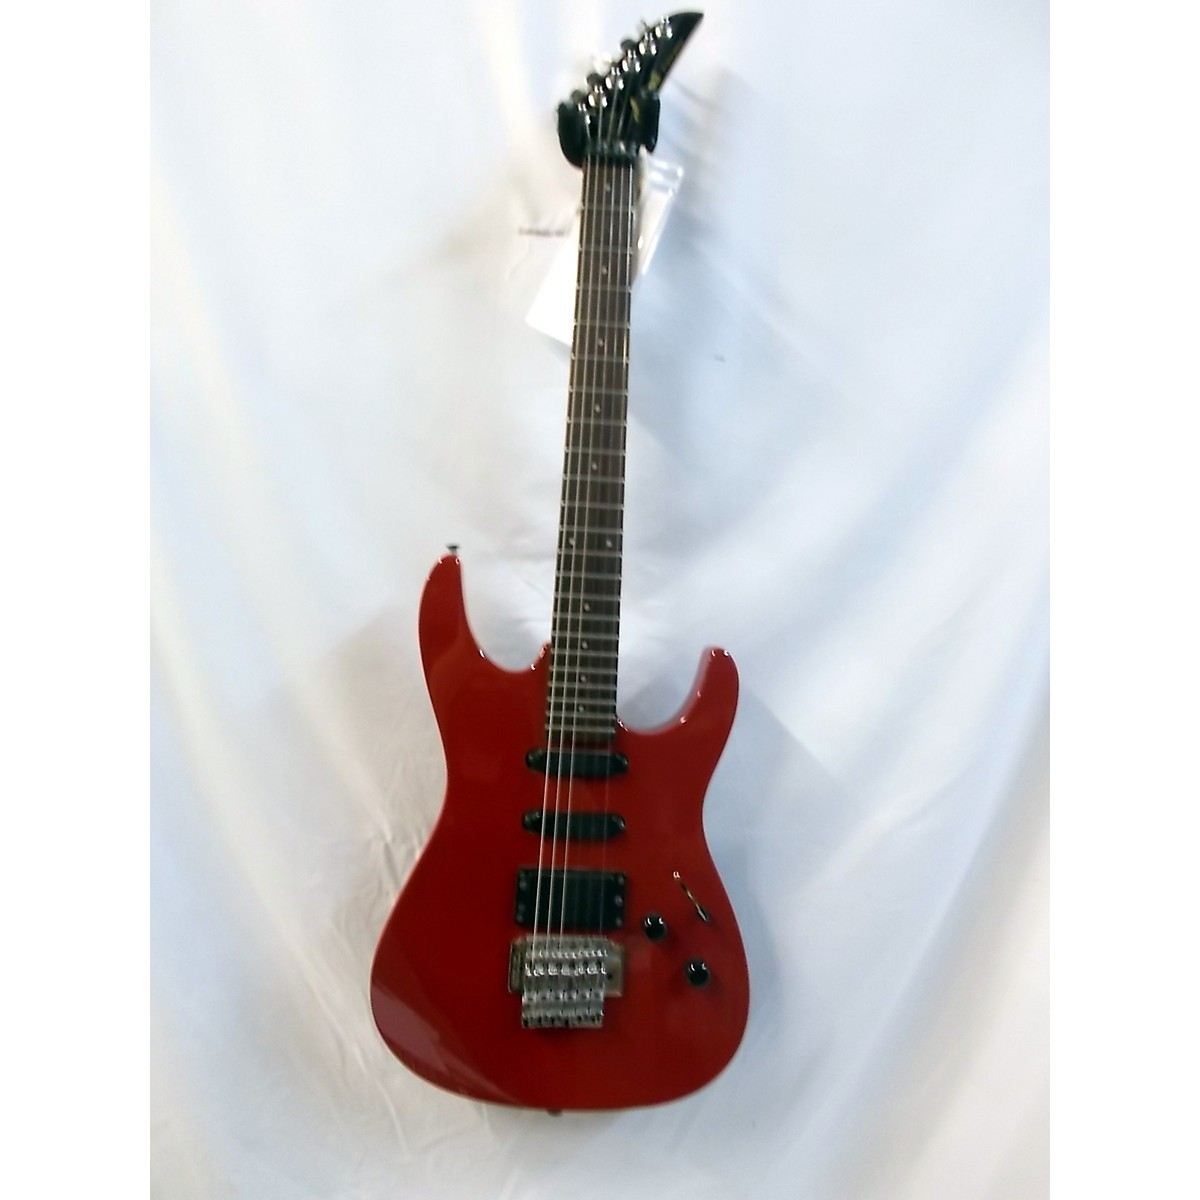 Aria 1980s Pro II SL-DX-3 Solid Body Electric Guitar